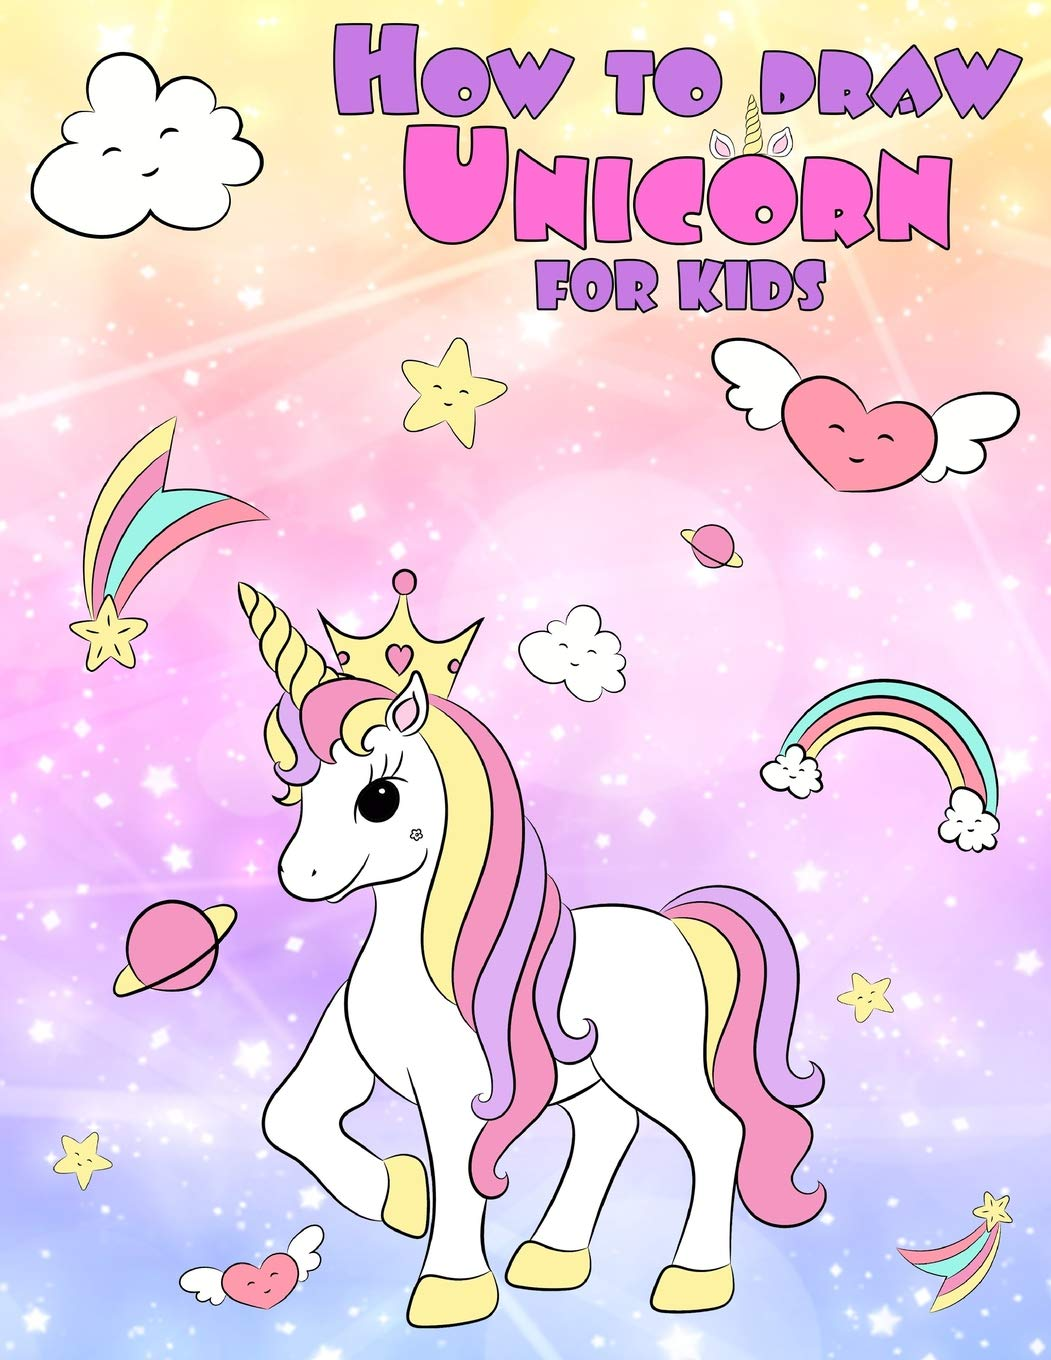 How to draw unicorn for kids learn to draw your favorite unicorn easy step by step drawings unicorn coloring book for kids for girls and anyone who